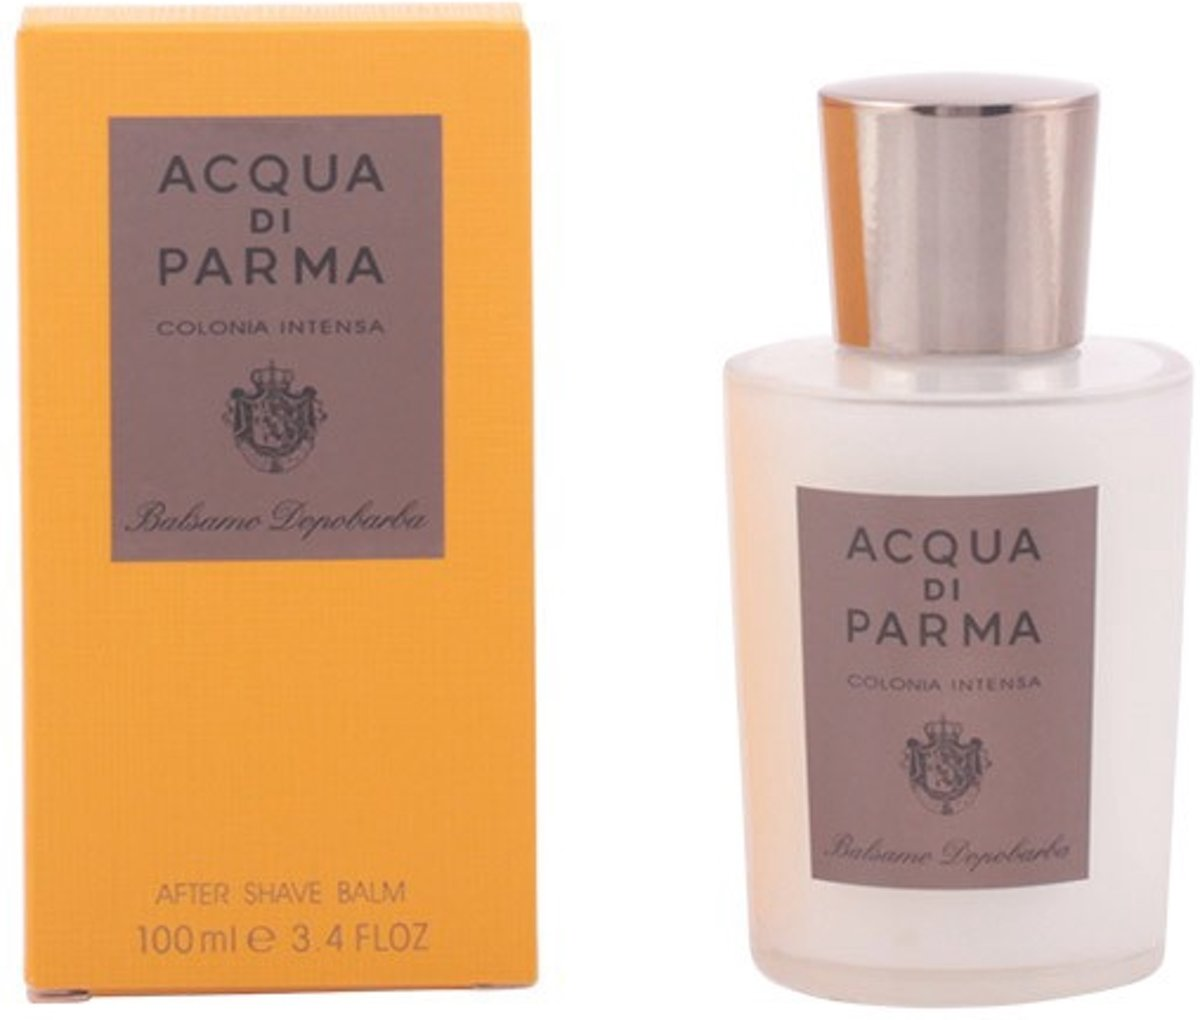 Acqua di Parma Colonia Intensa aftershave balm 100 ml